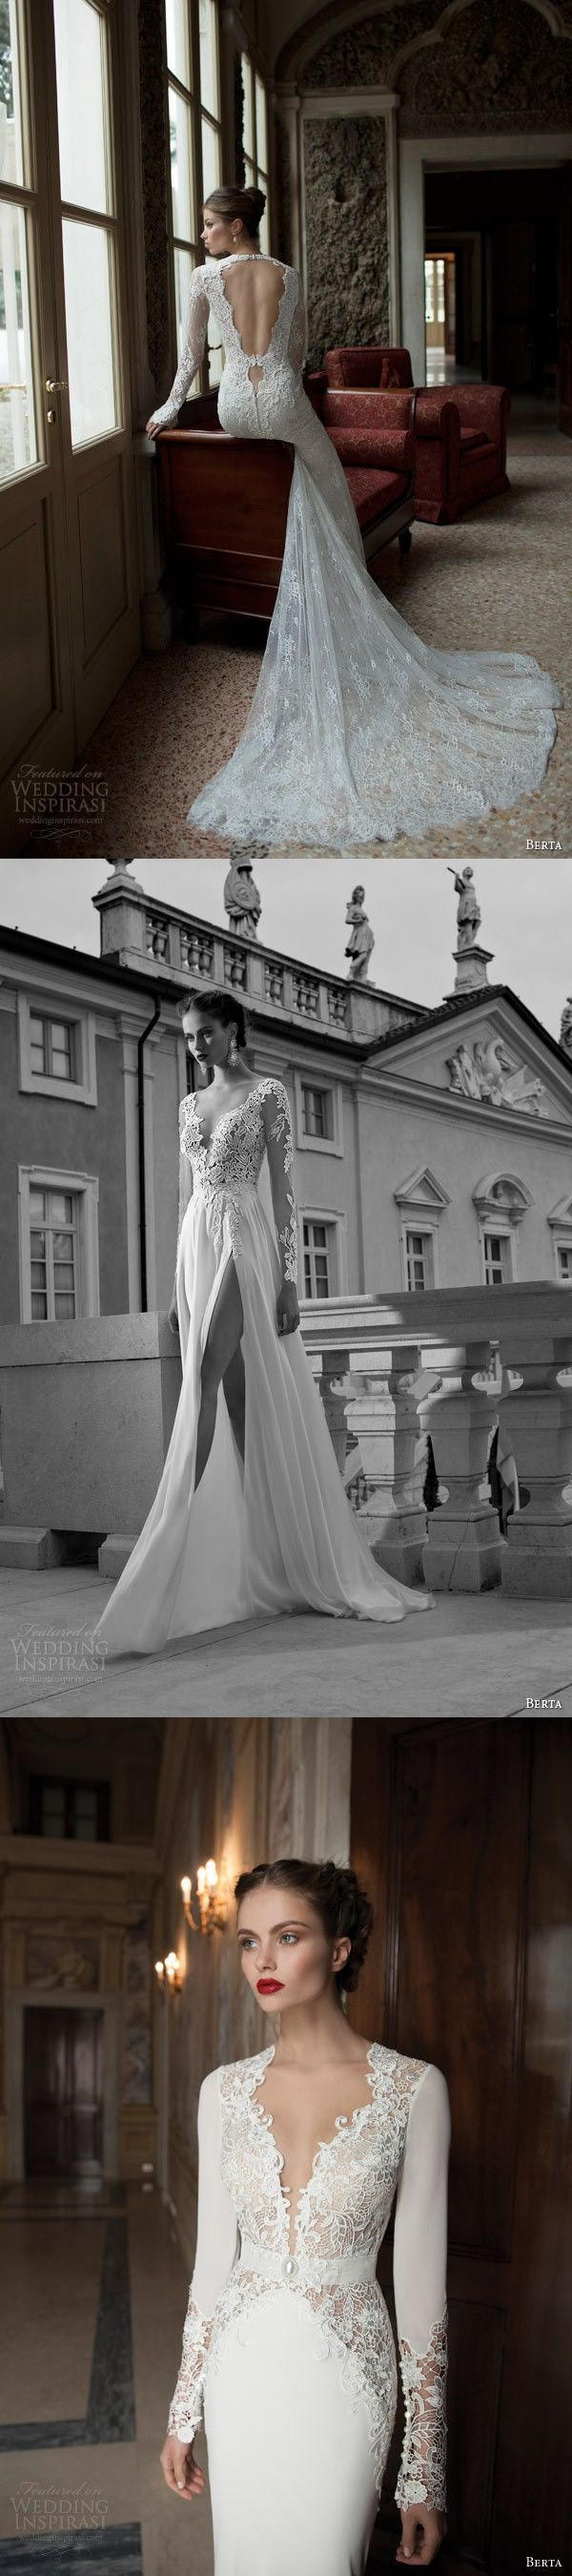 More than perfect... THE DRESS!